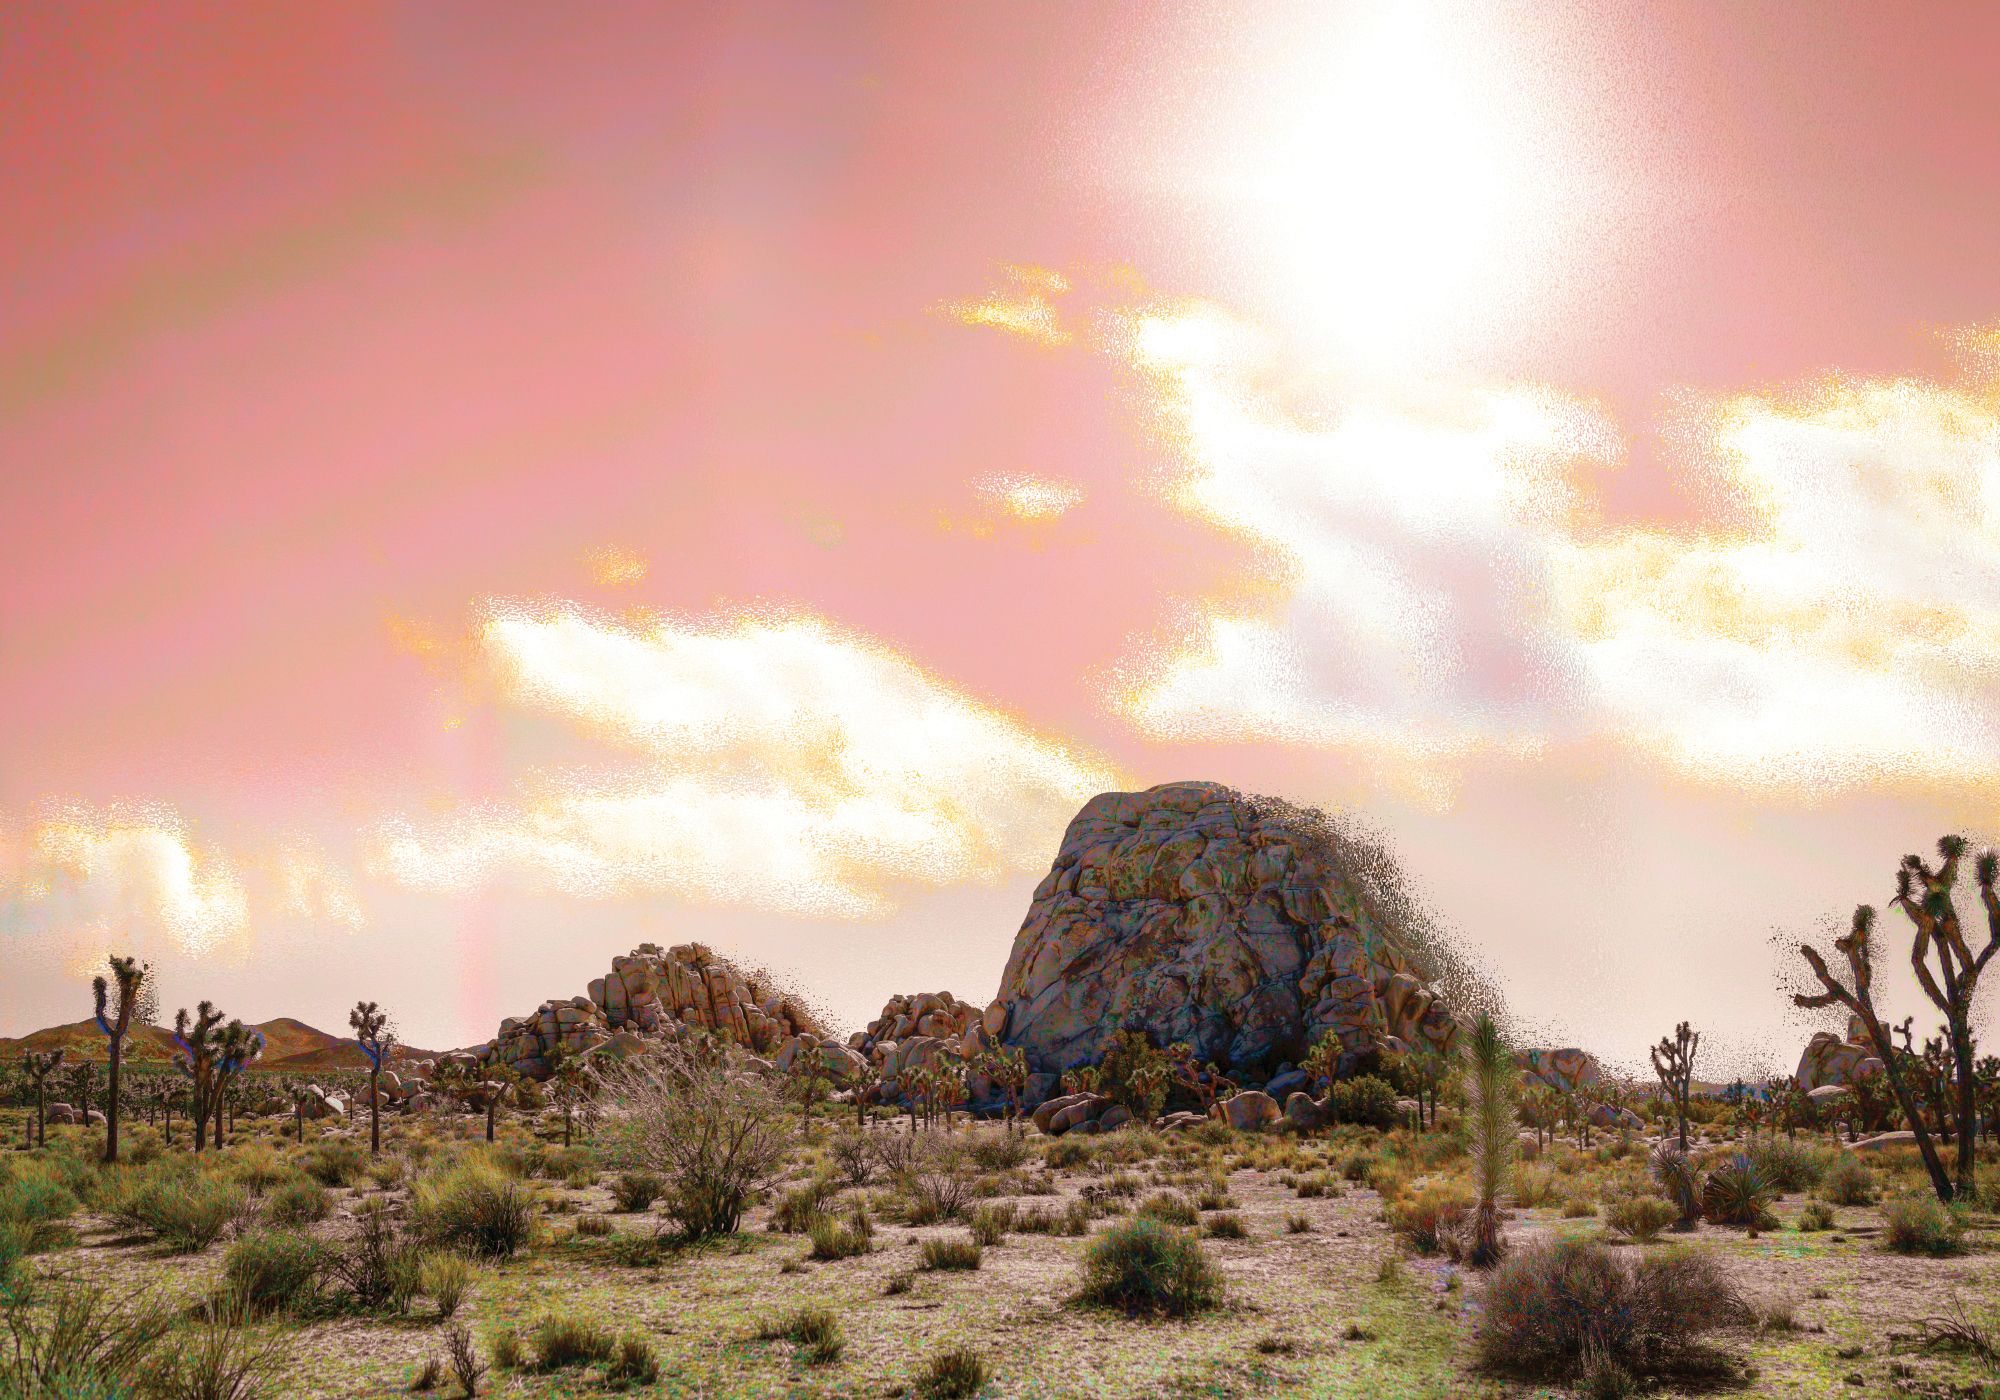 Conceptual abstract landscape photograph of Joshua Tree National Park in California.